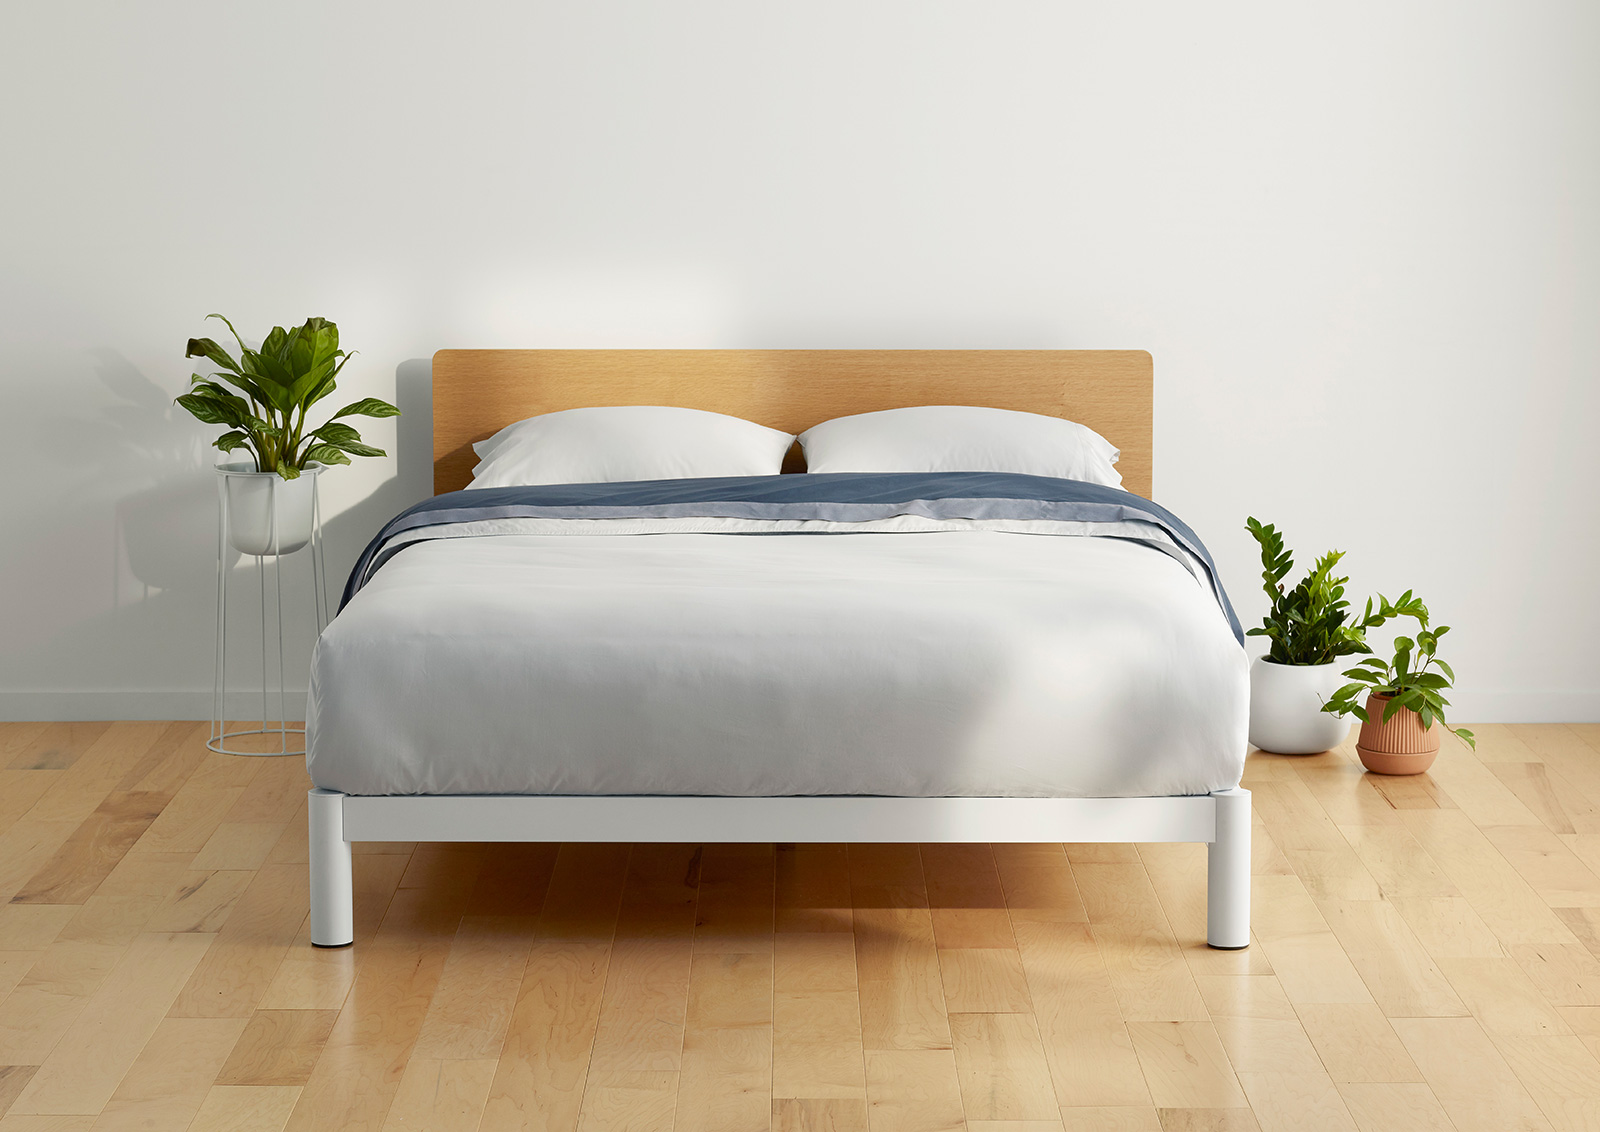 Mattress Platform The Platform Bed Casper A Beautiful Platform Bed Fit For A